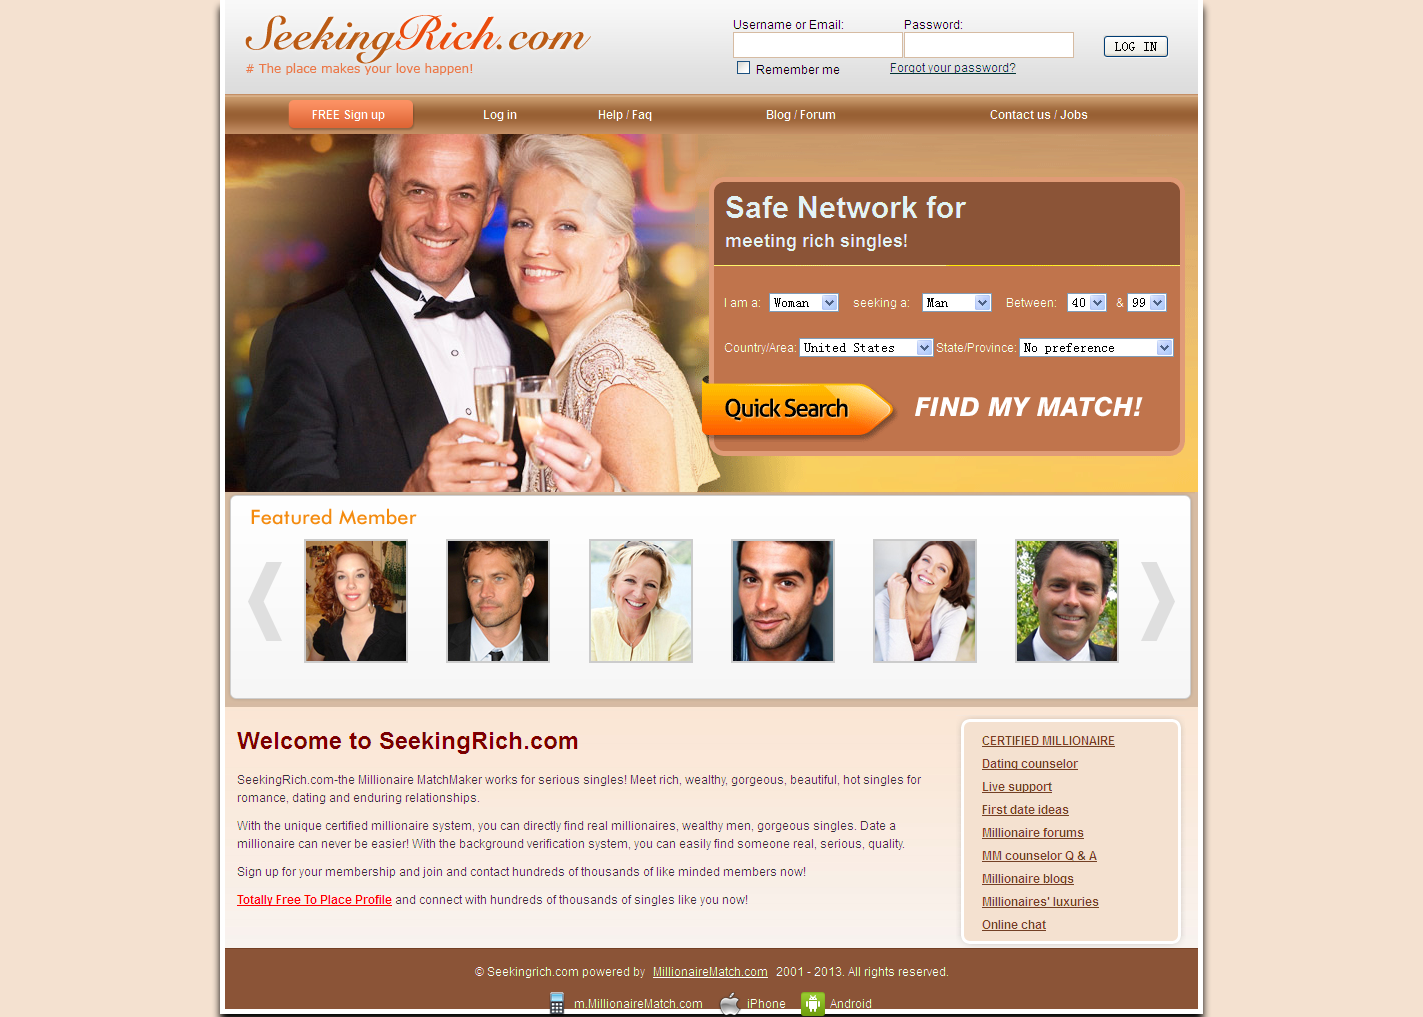 ririe singles dating site Sobersinglesdate is the exciting, new sober dating site for sober singles free to join we offer more features than any sober dating website including text chat and video chat, apps for ios and android and many other features.